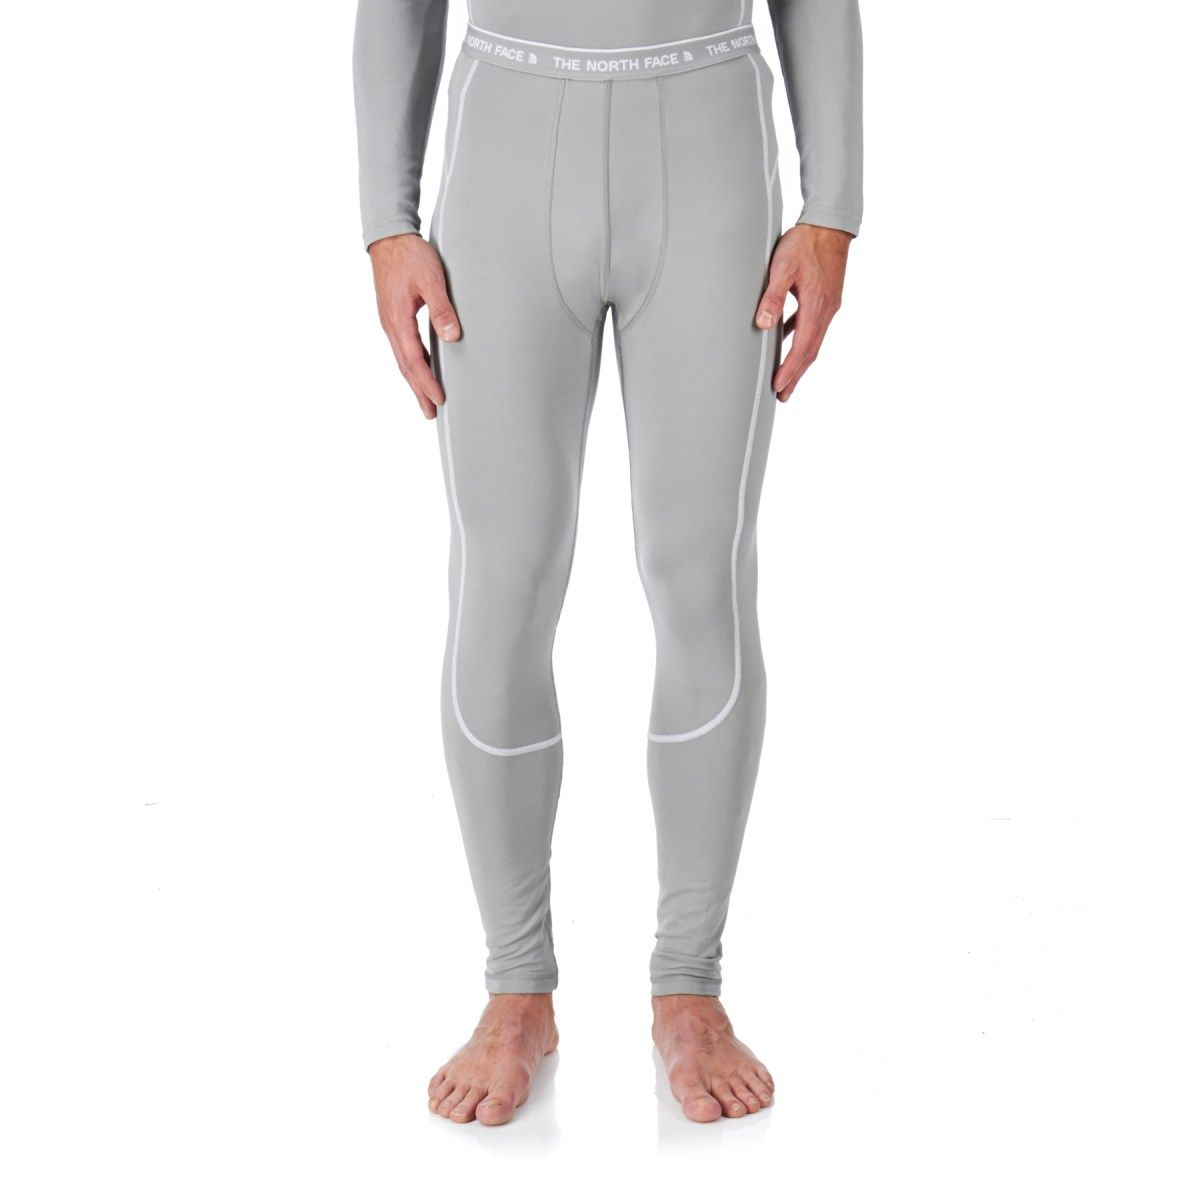 d7ac6bb5e Men's The North Face Thermals - The North Face Warm Tight Thermal ...